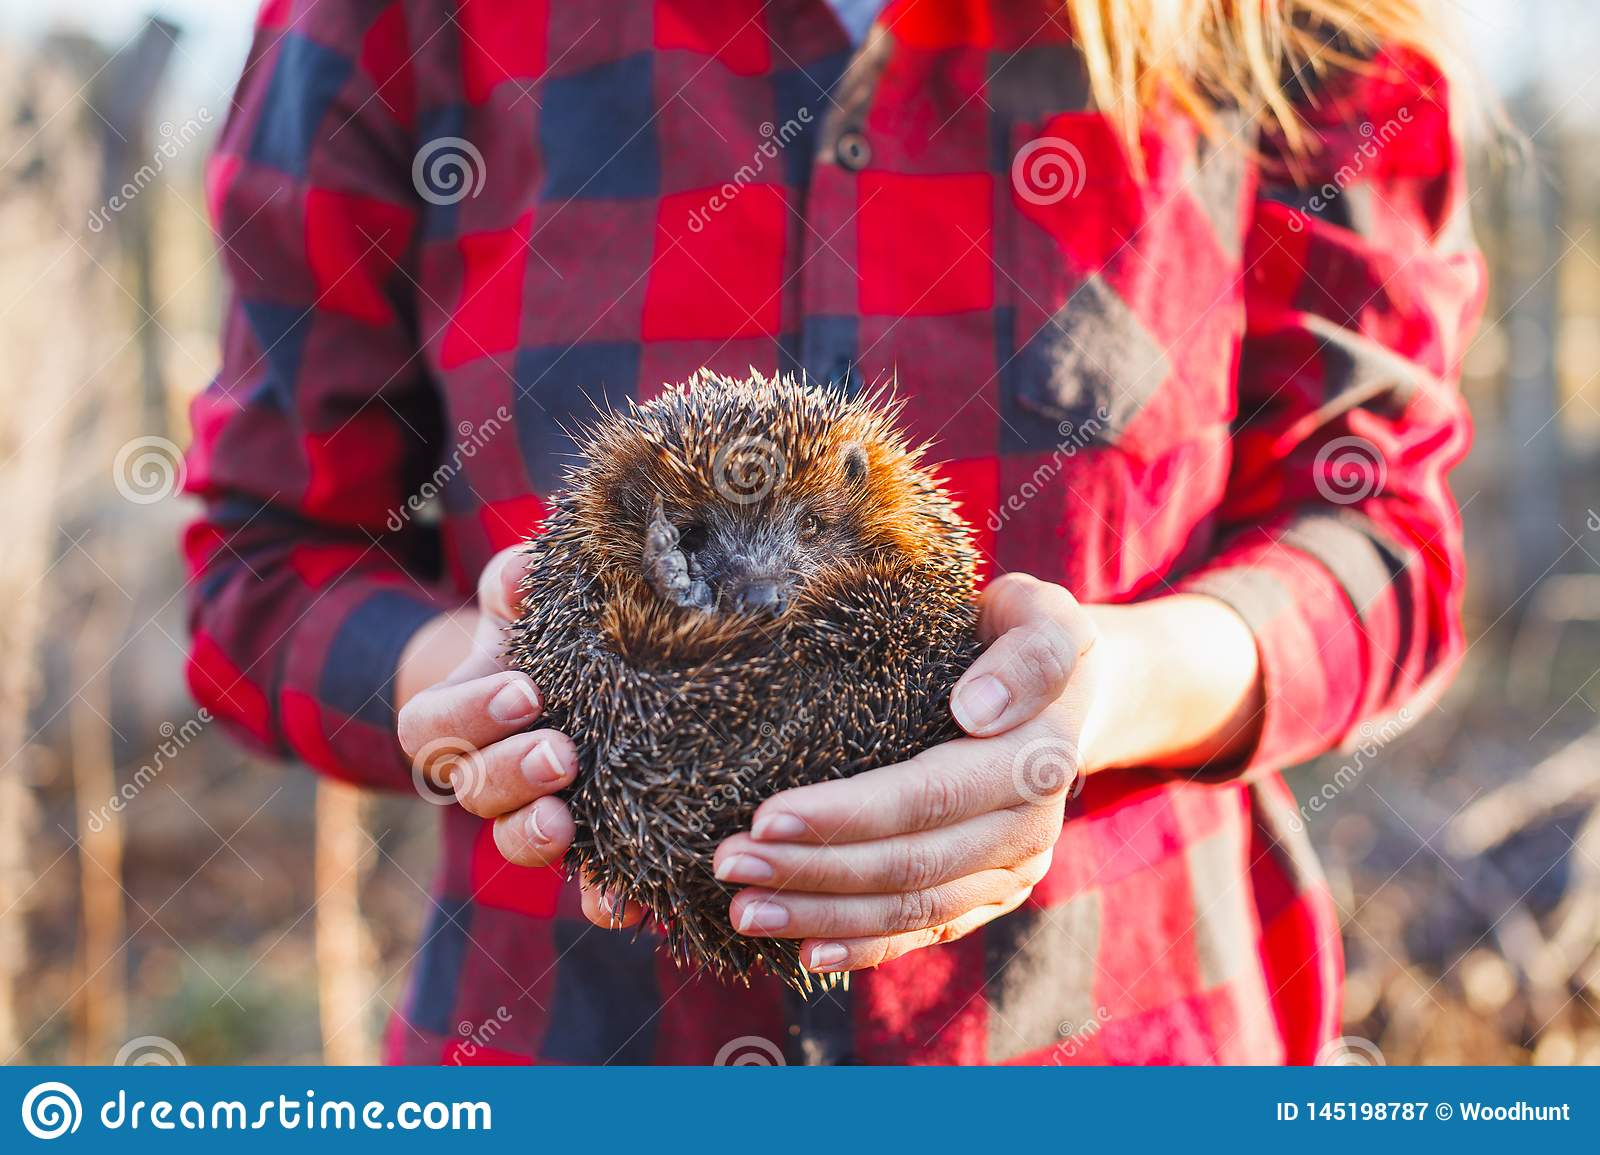 Girl in a red plaid shirt holding a hedgehog